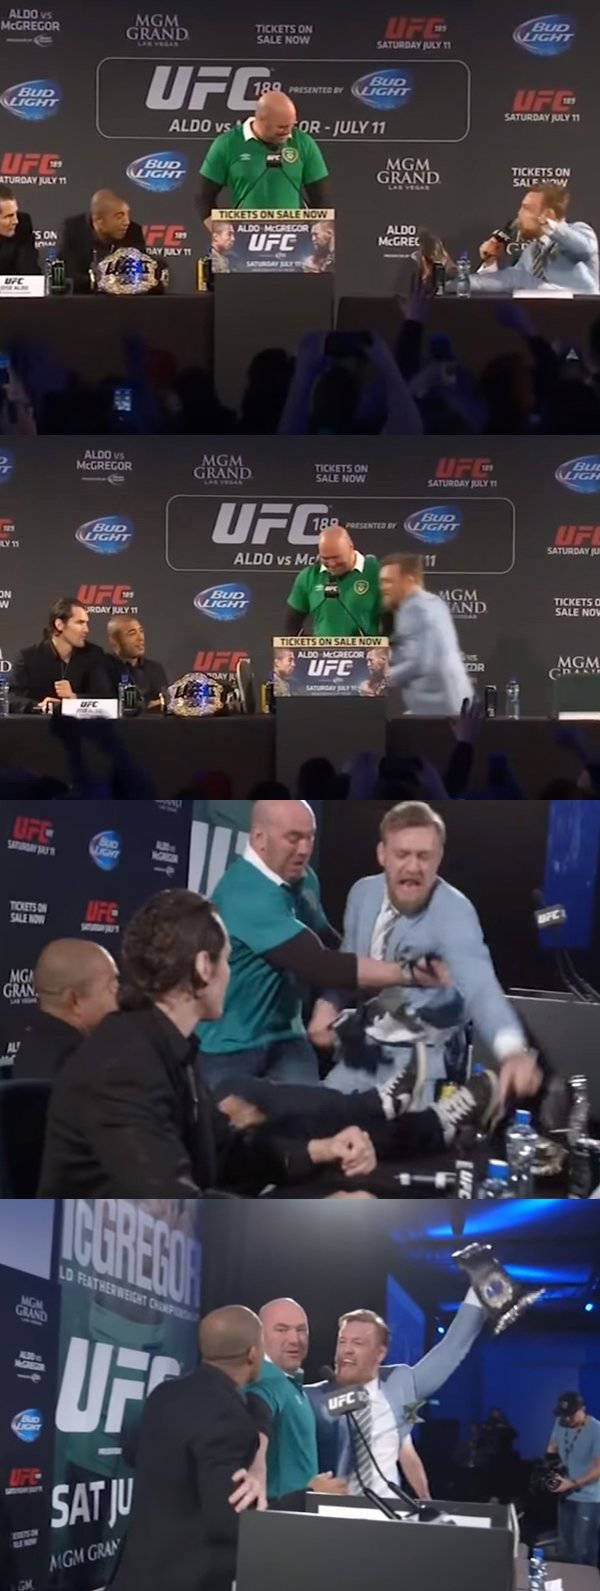 Conor McGregor Knows How To Talk Some Serious Trash (15 pics)